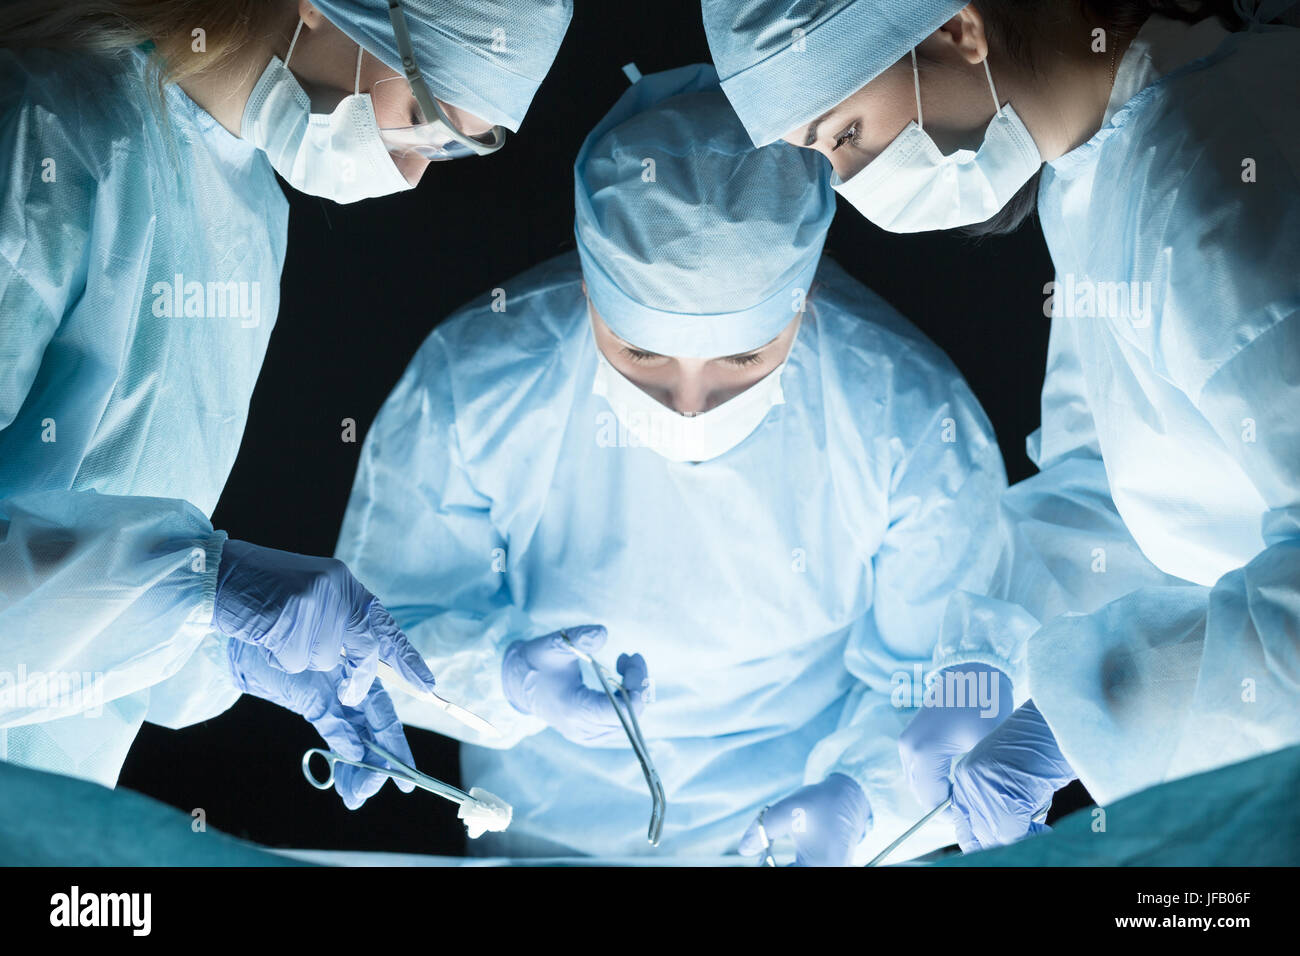 Medical team performing operation. Group of surgeon at work in operating theatre - Stock Image